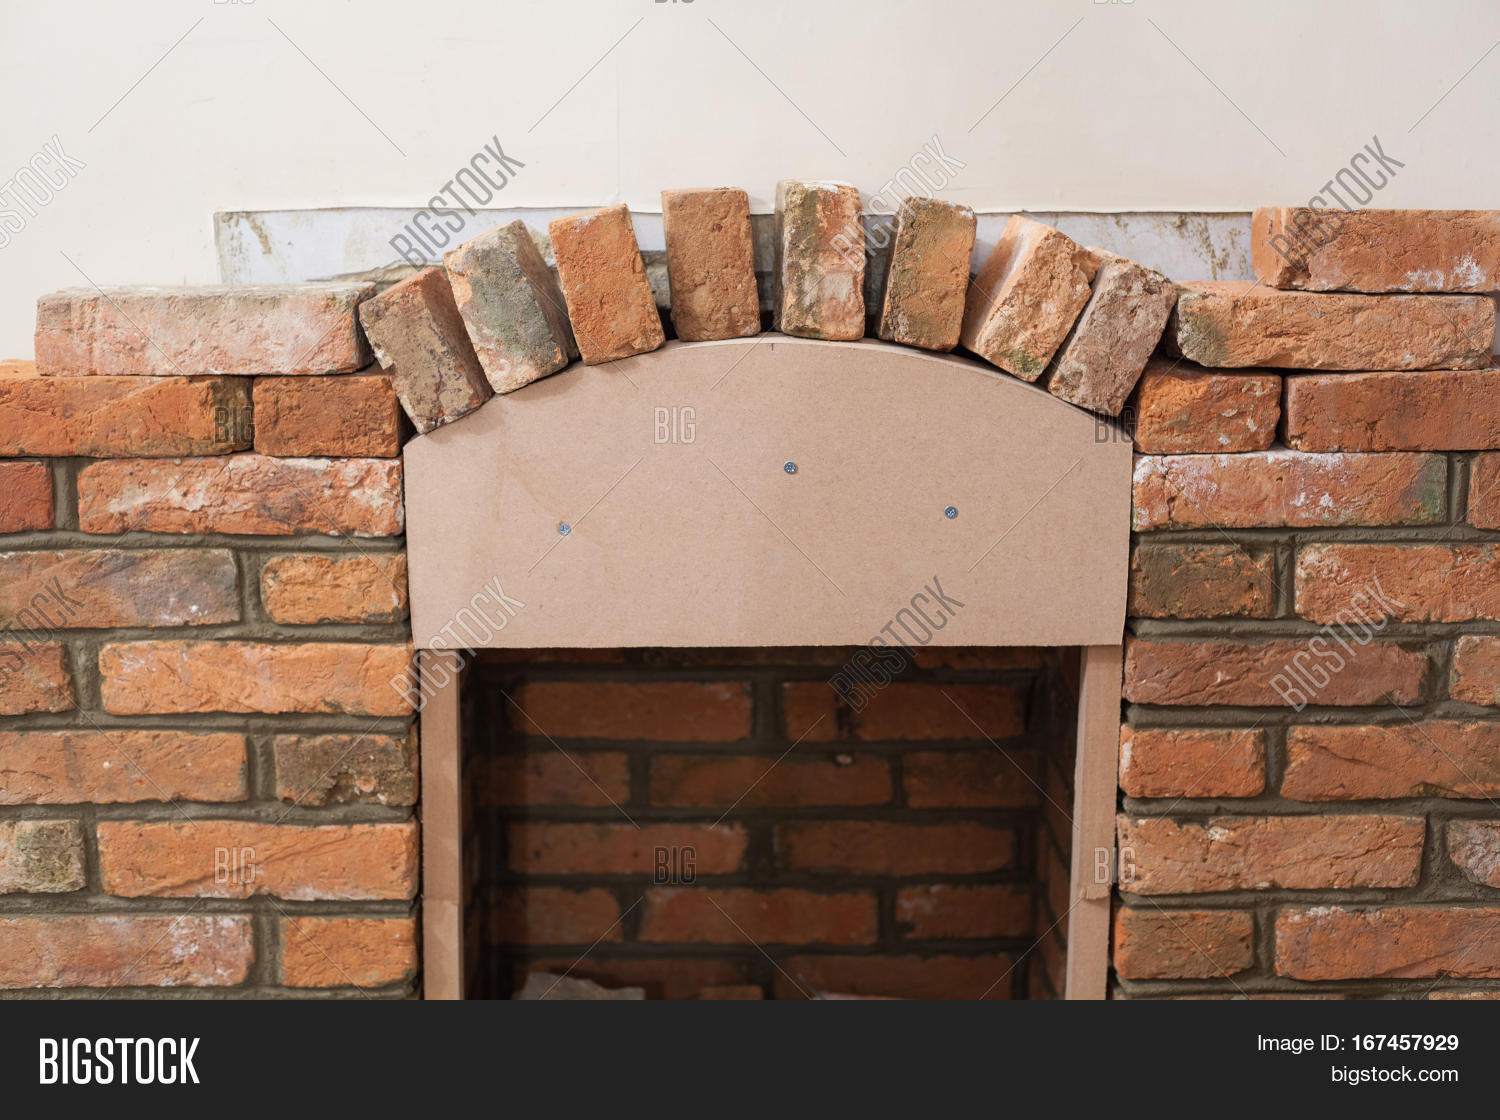 Indoor Diy Project Building Fireplace In The House Laying Bricks Template For Arch